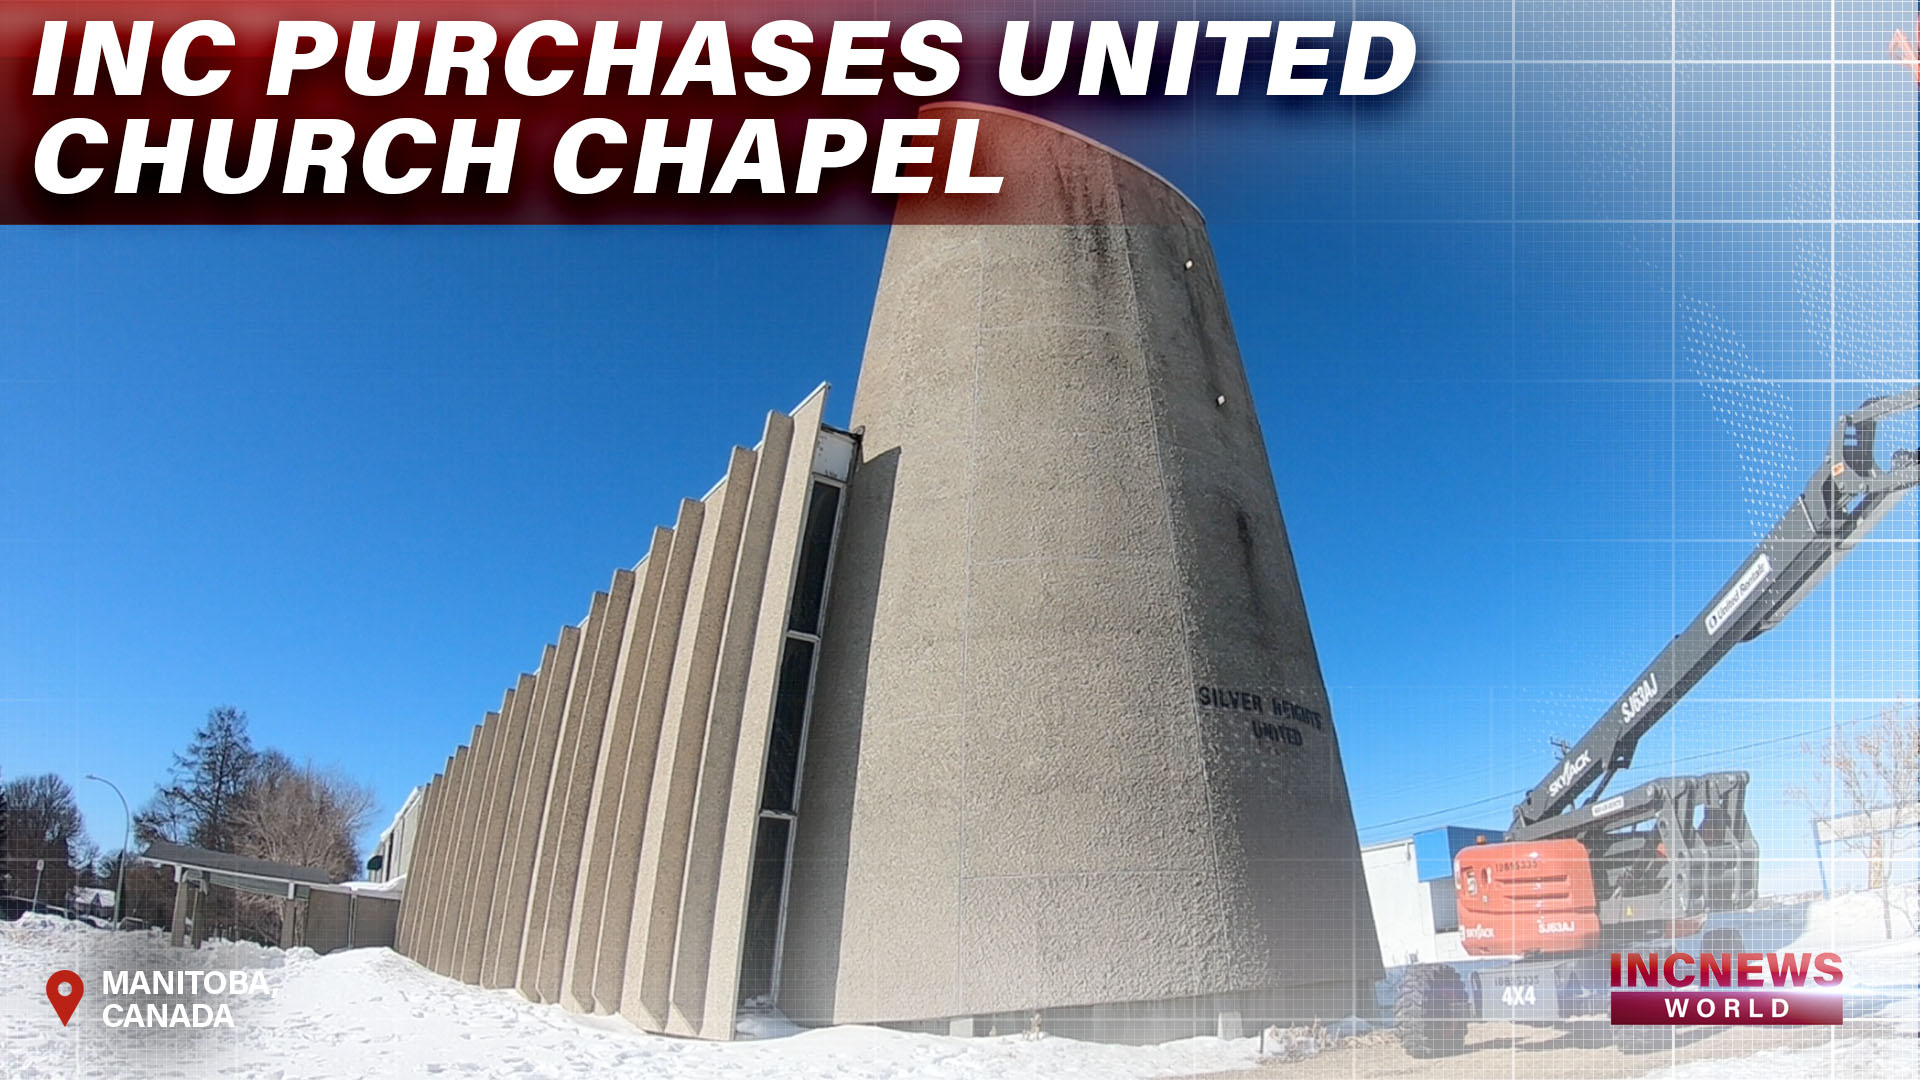 INC Purchases United Church Chapel